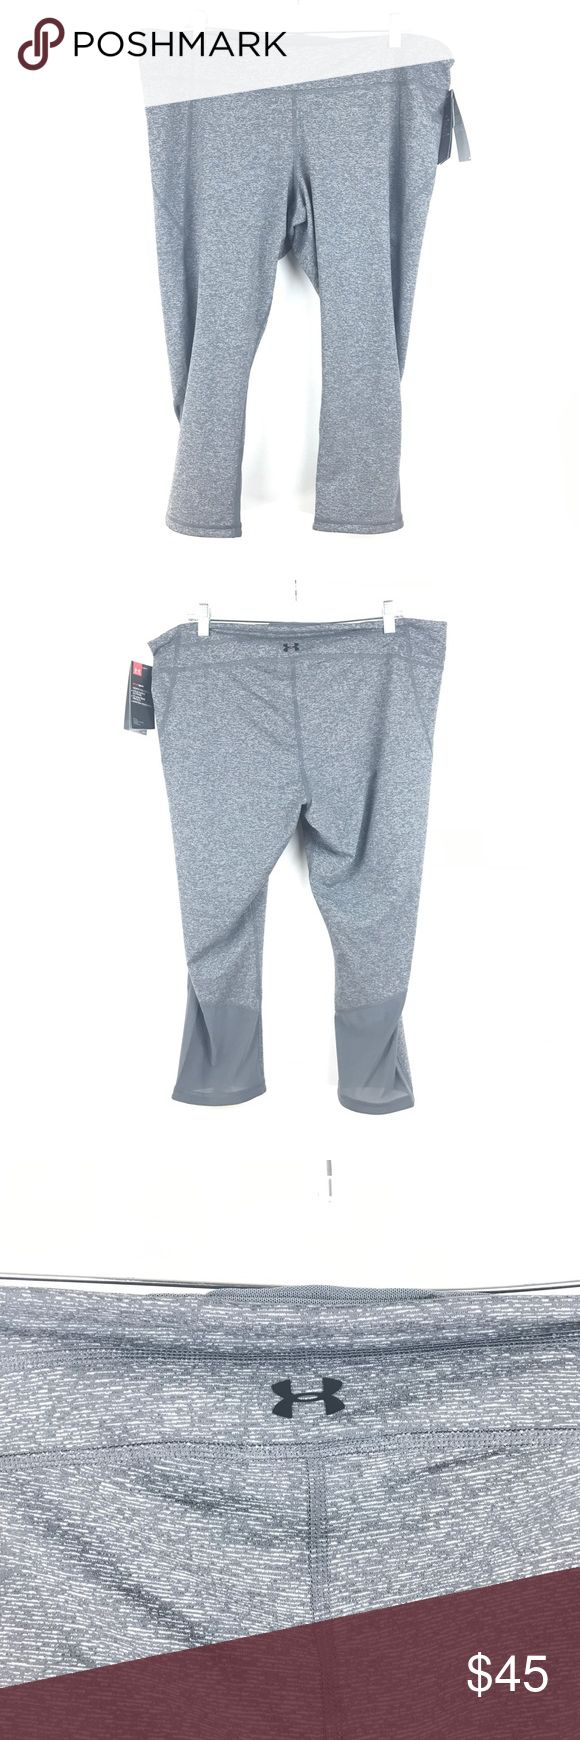 "Under Armour Gray Athletic Crop Pants Sz 2XL NEW Under Armour Women's Size XXL Heat gear Fitted Athletic Crop Pants Gray NEW 153  Measurements Inseam:  23""  Long  Brand New with original tags attached Retail Price $65 Under Armour Pants Capris"